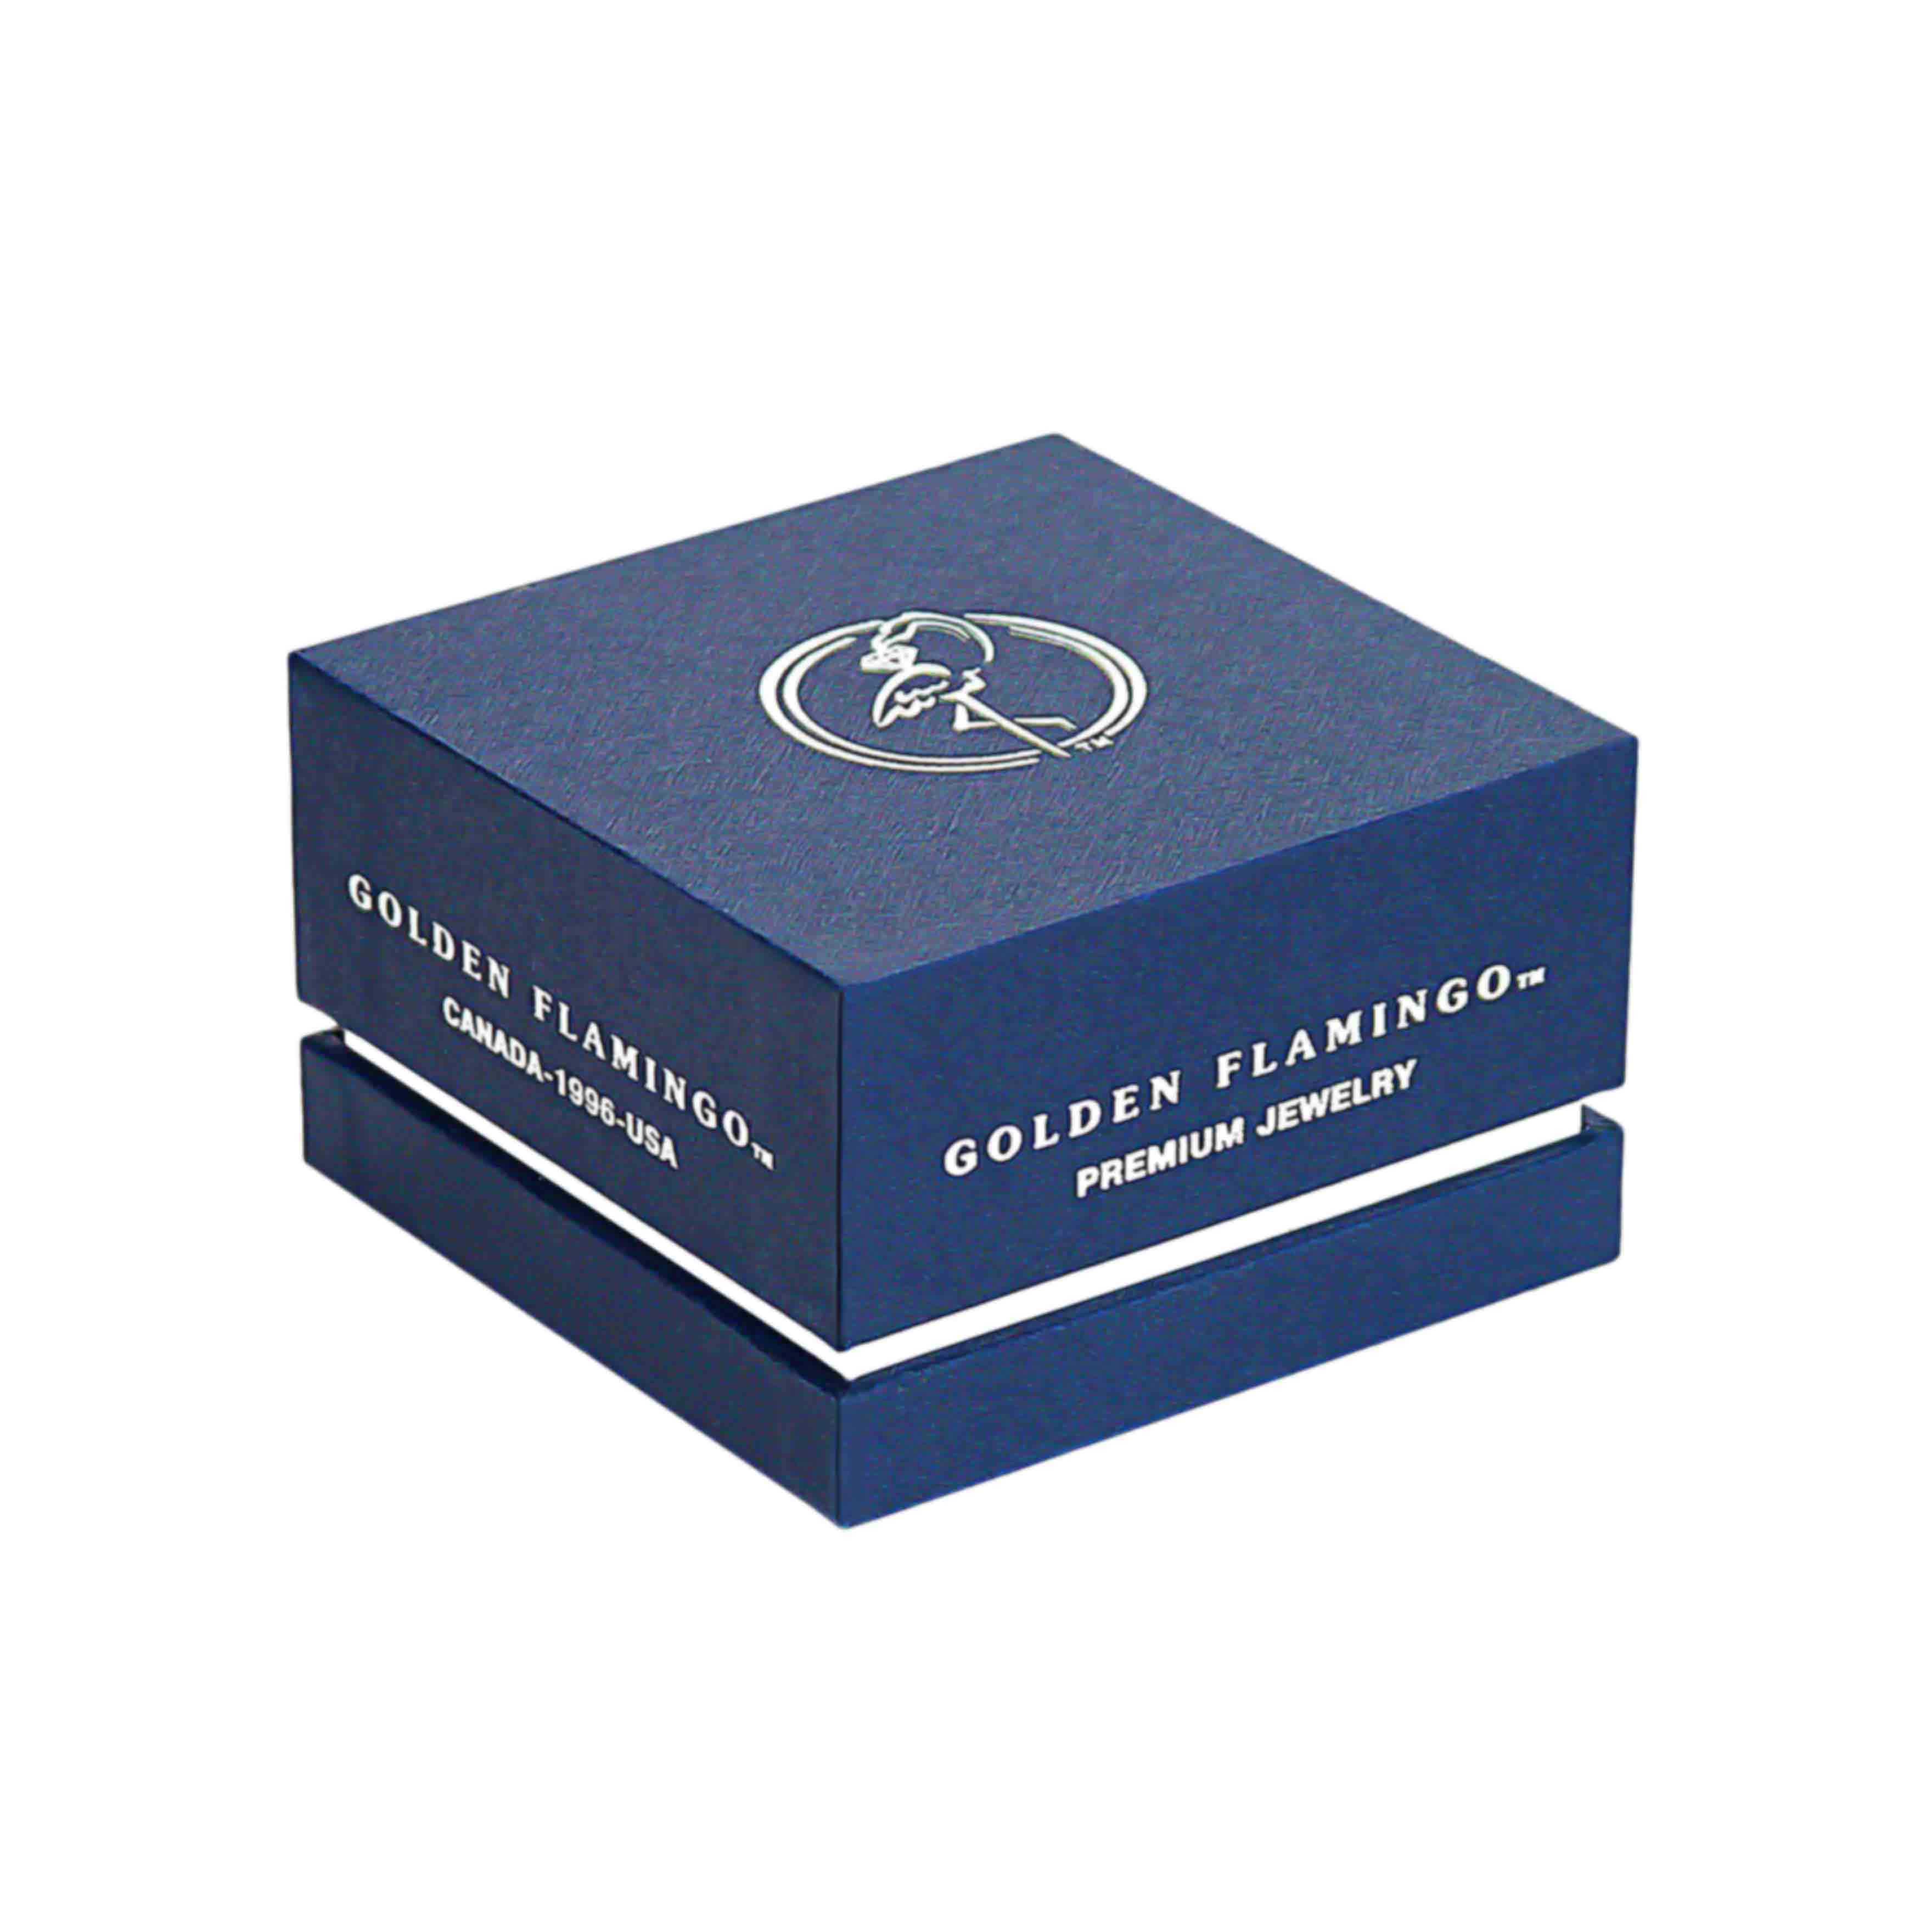 Boutique-quality gift box by Golden Flamingo